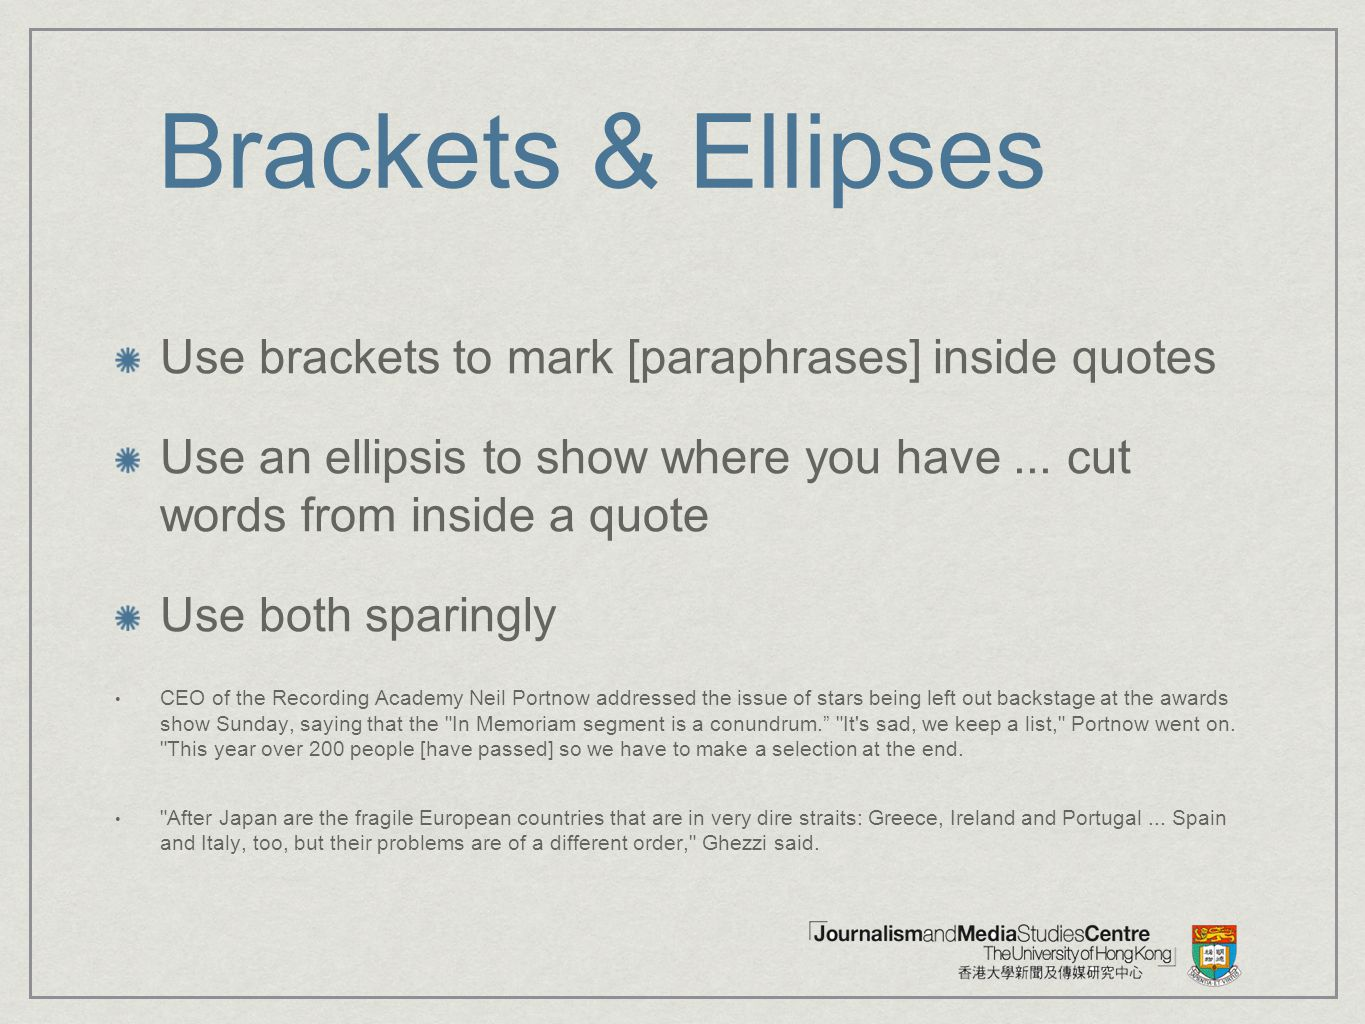 Brackets & Ellipses Use brackets to mark [paraphrases] inside quotes